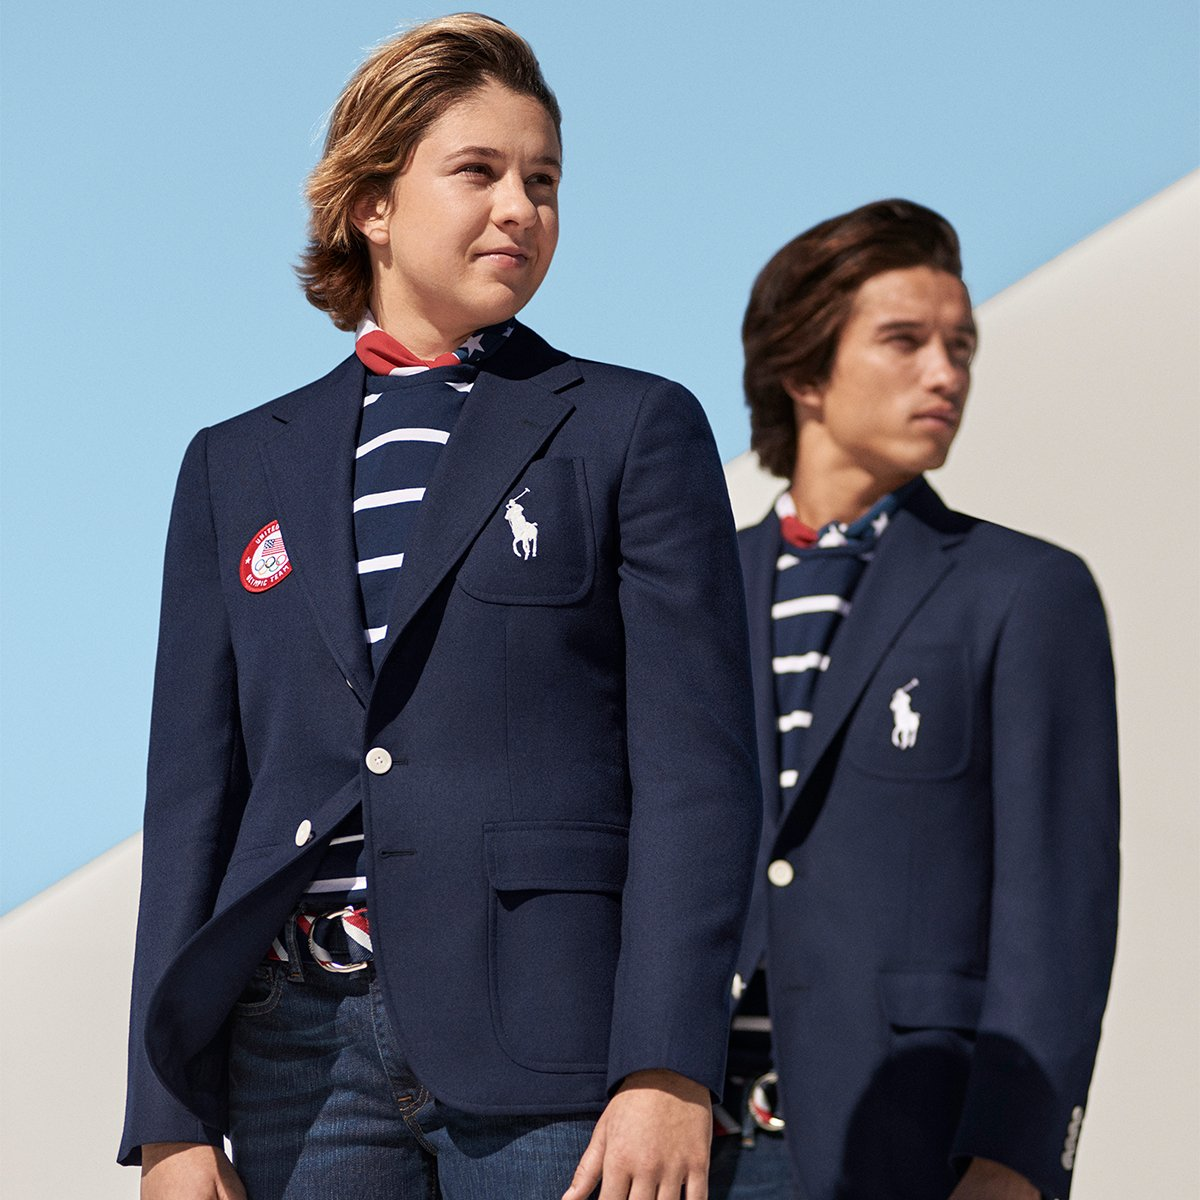 Ralph Lauren Debuts Team USA's Uniforms: How He Struck Gold With the Opening & Closing Ceremony Looks